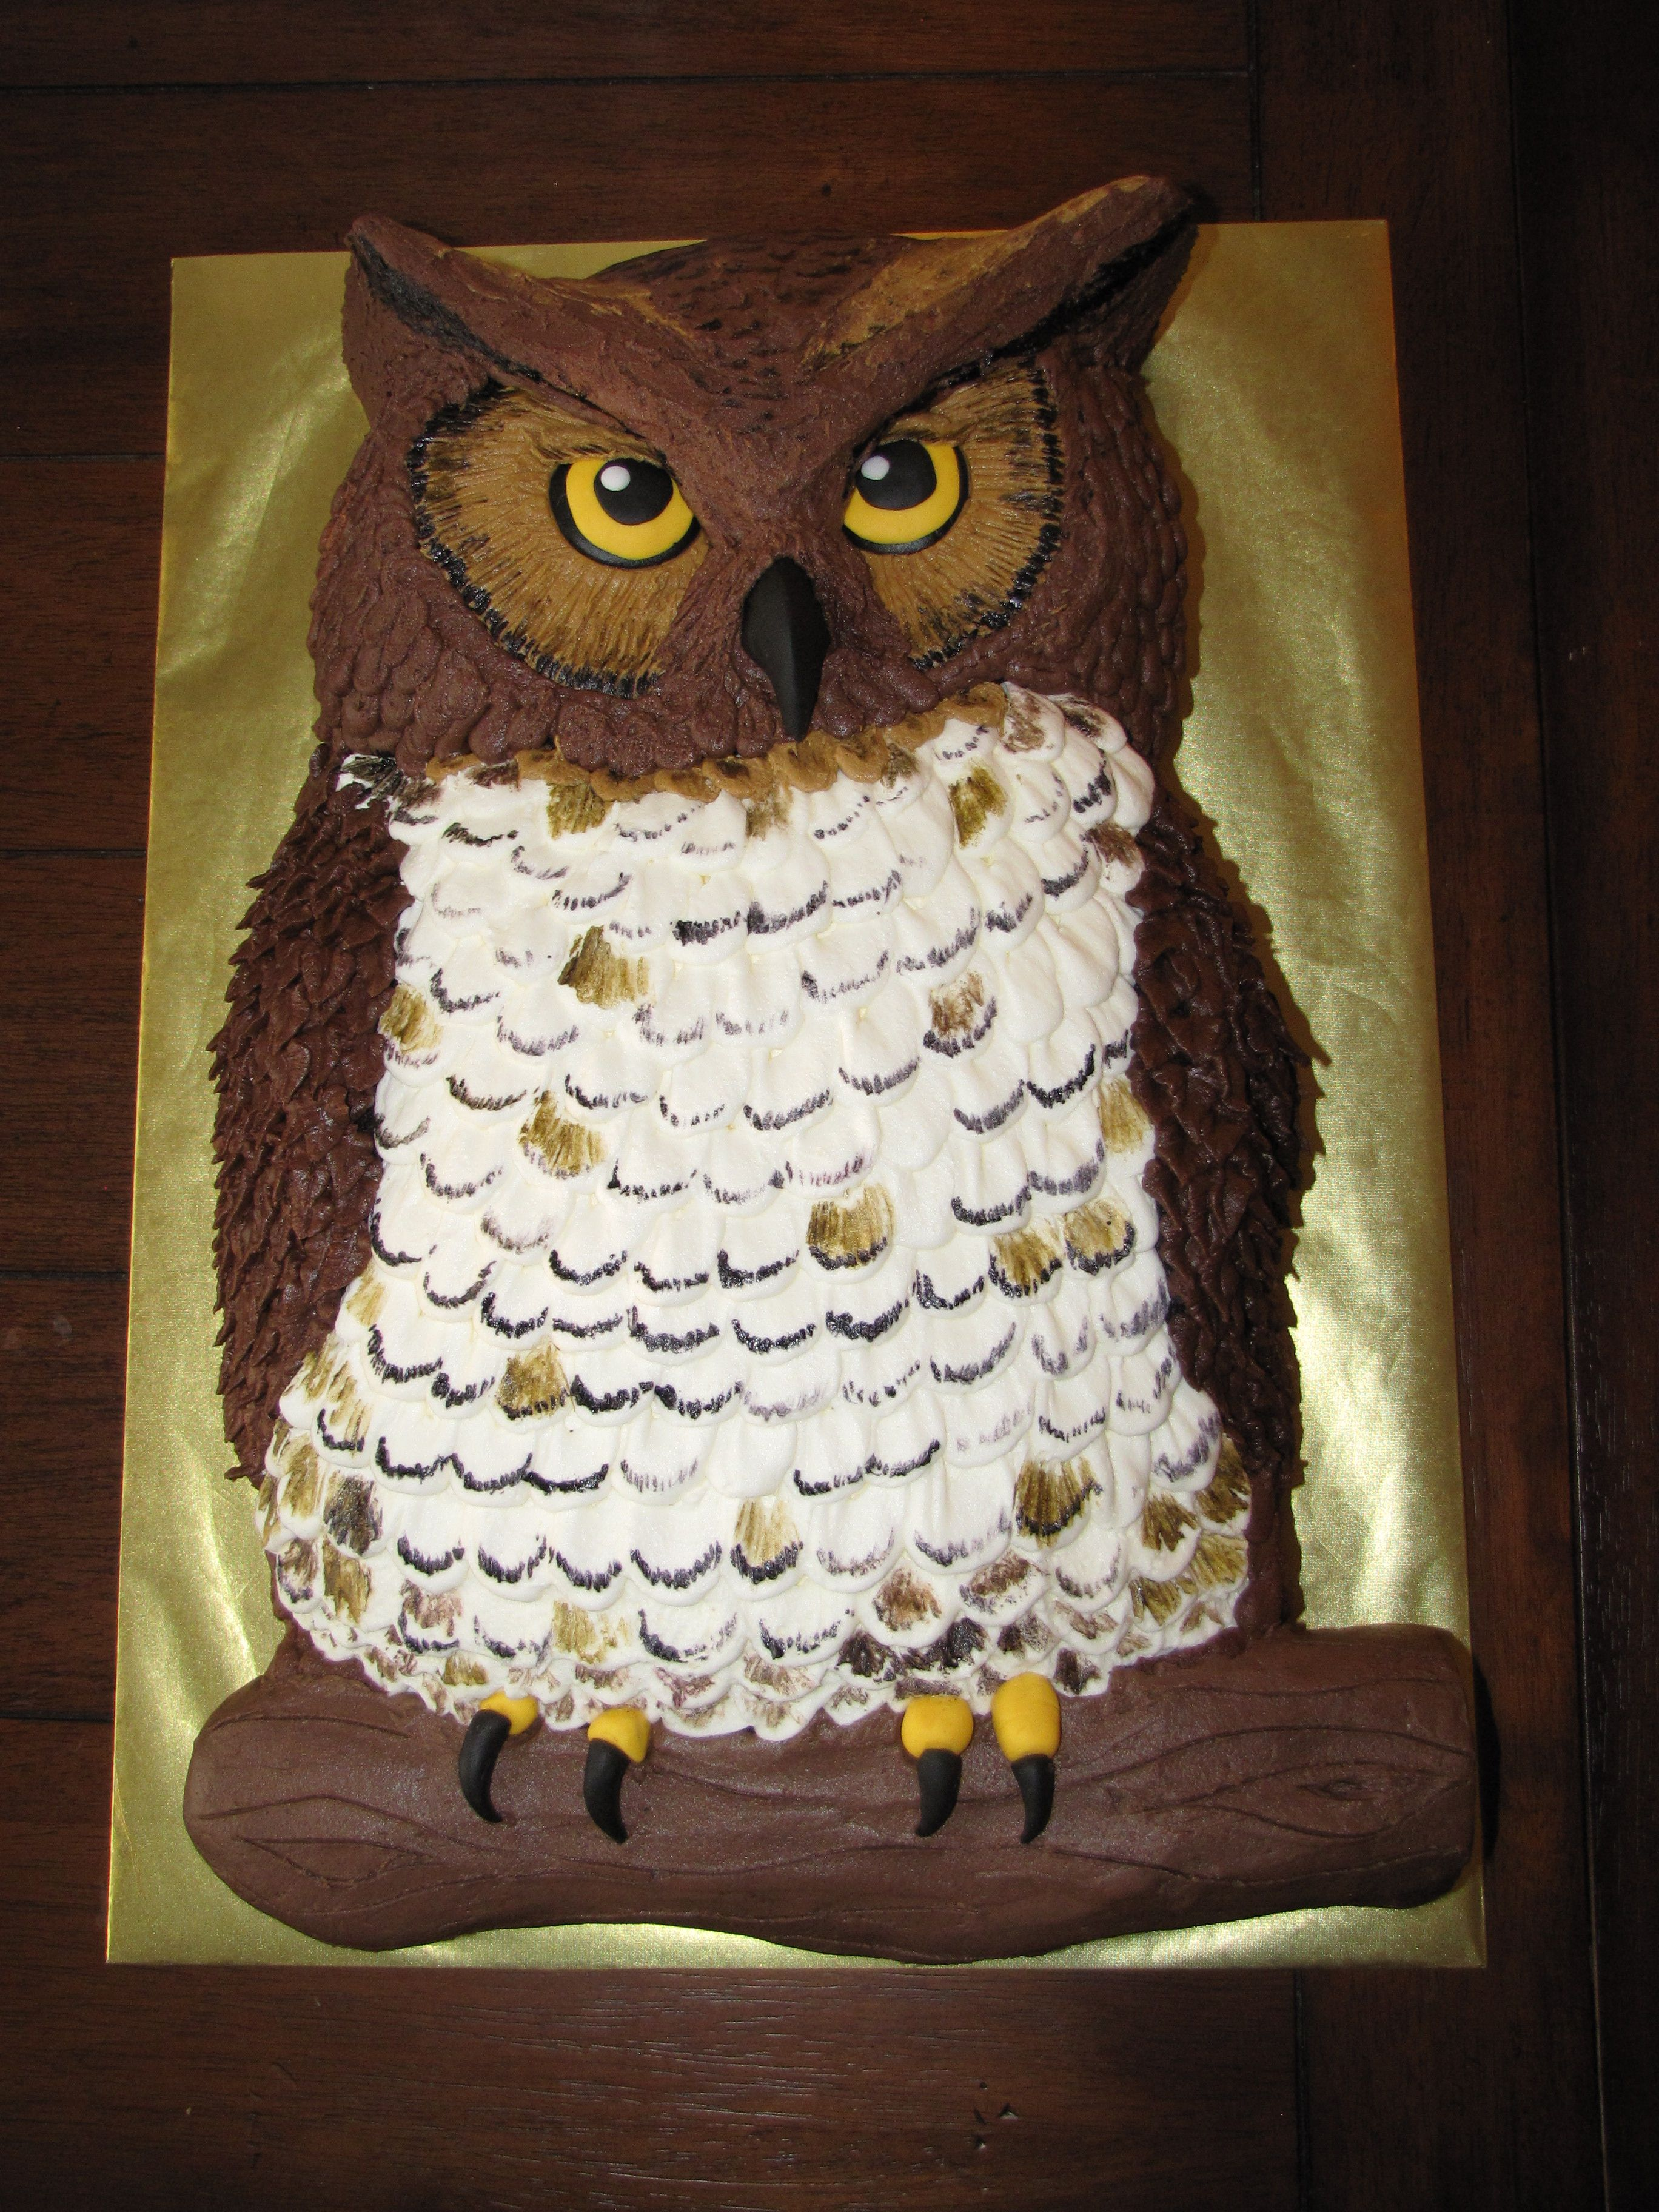 Owl Cake The Birthday Boy Wanted A Realistic Looking Owl